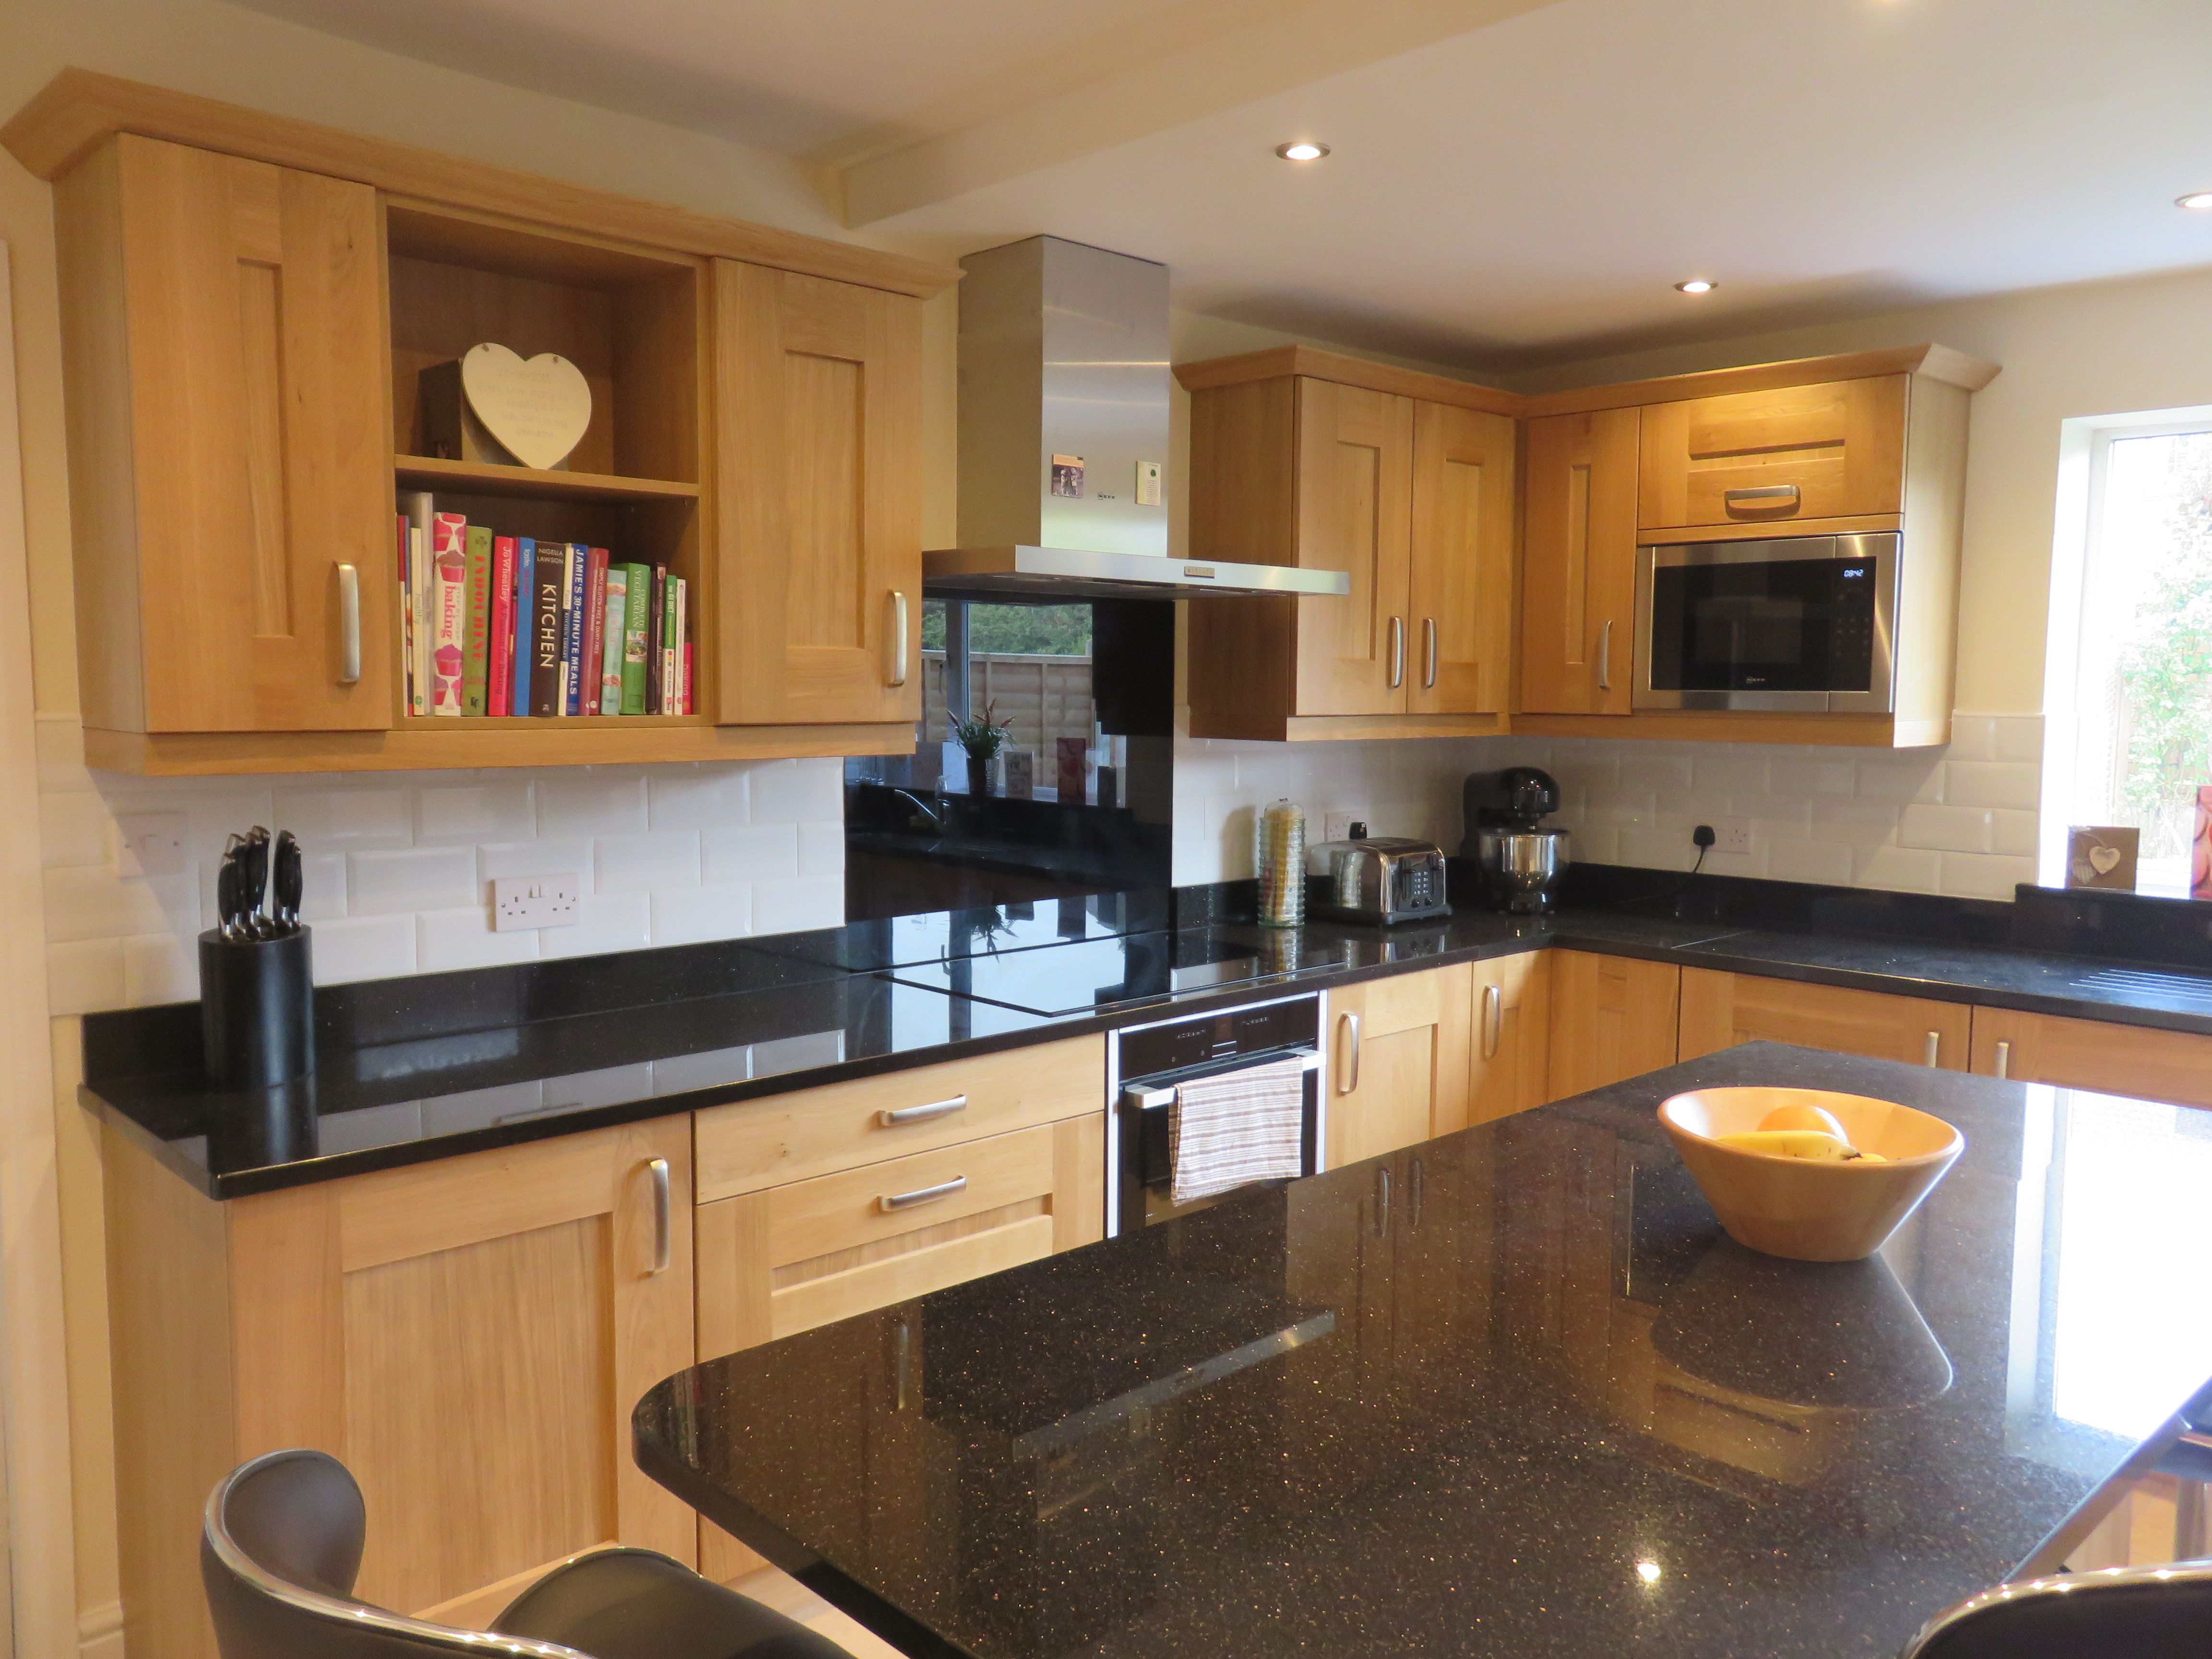 Clonmel Knotty Oak Shaker Kitchen The Gallery Fitted Kitchens Beech Kitchen Cabinets Kitchen Fittings Kitchen Dinning Room